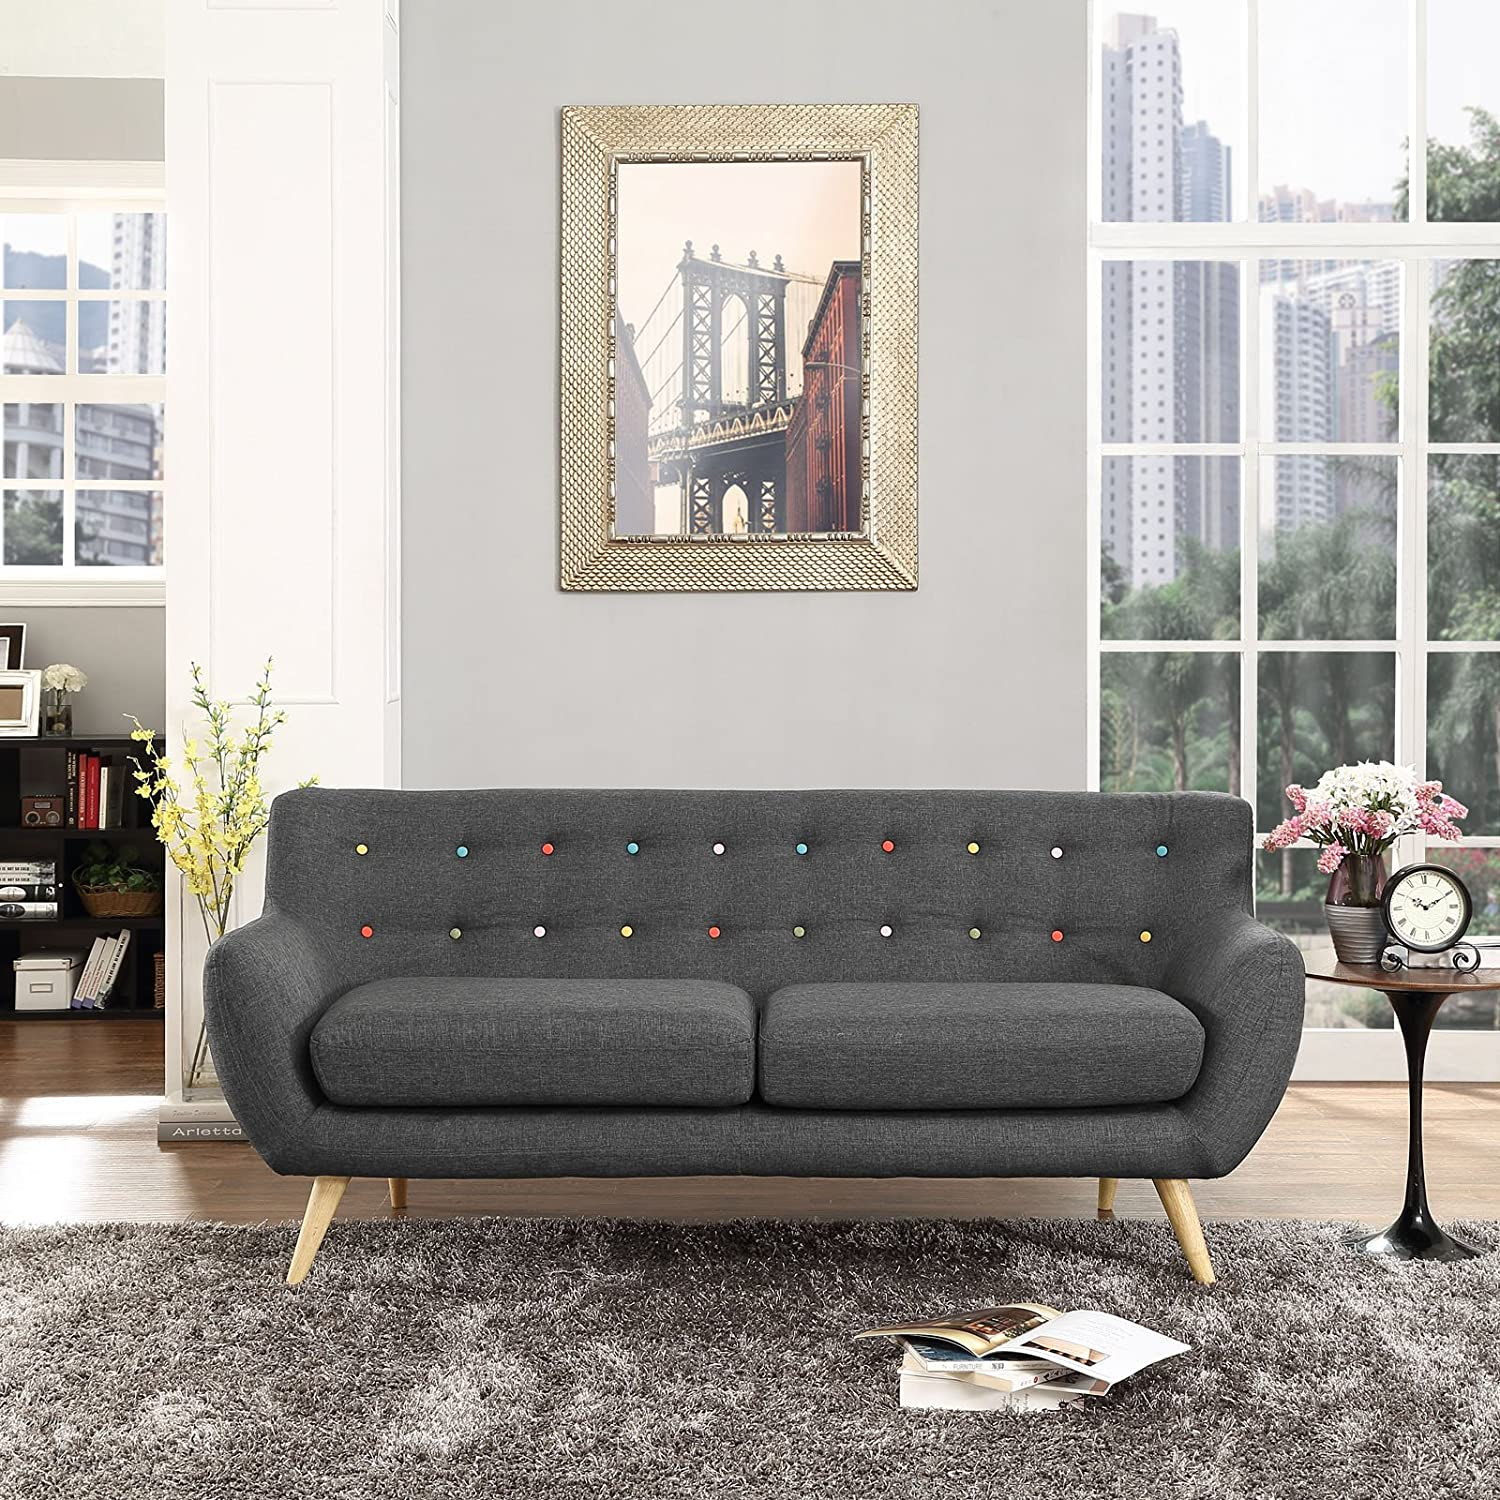 cute-small-space-sofa-with-colorful-button-tufting-mid-century-modern-retro-furniture-for-sale-online-fits-bedroom-living-room-or-office